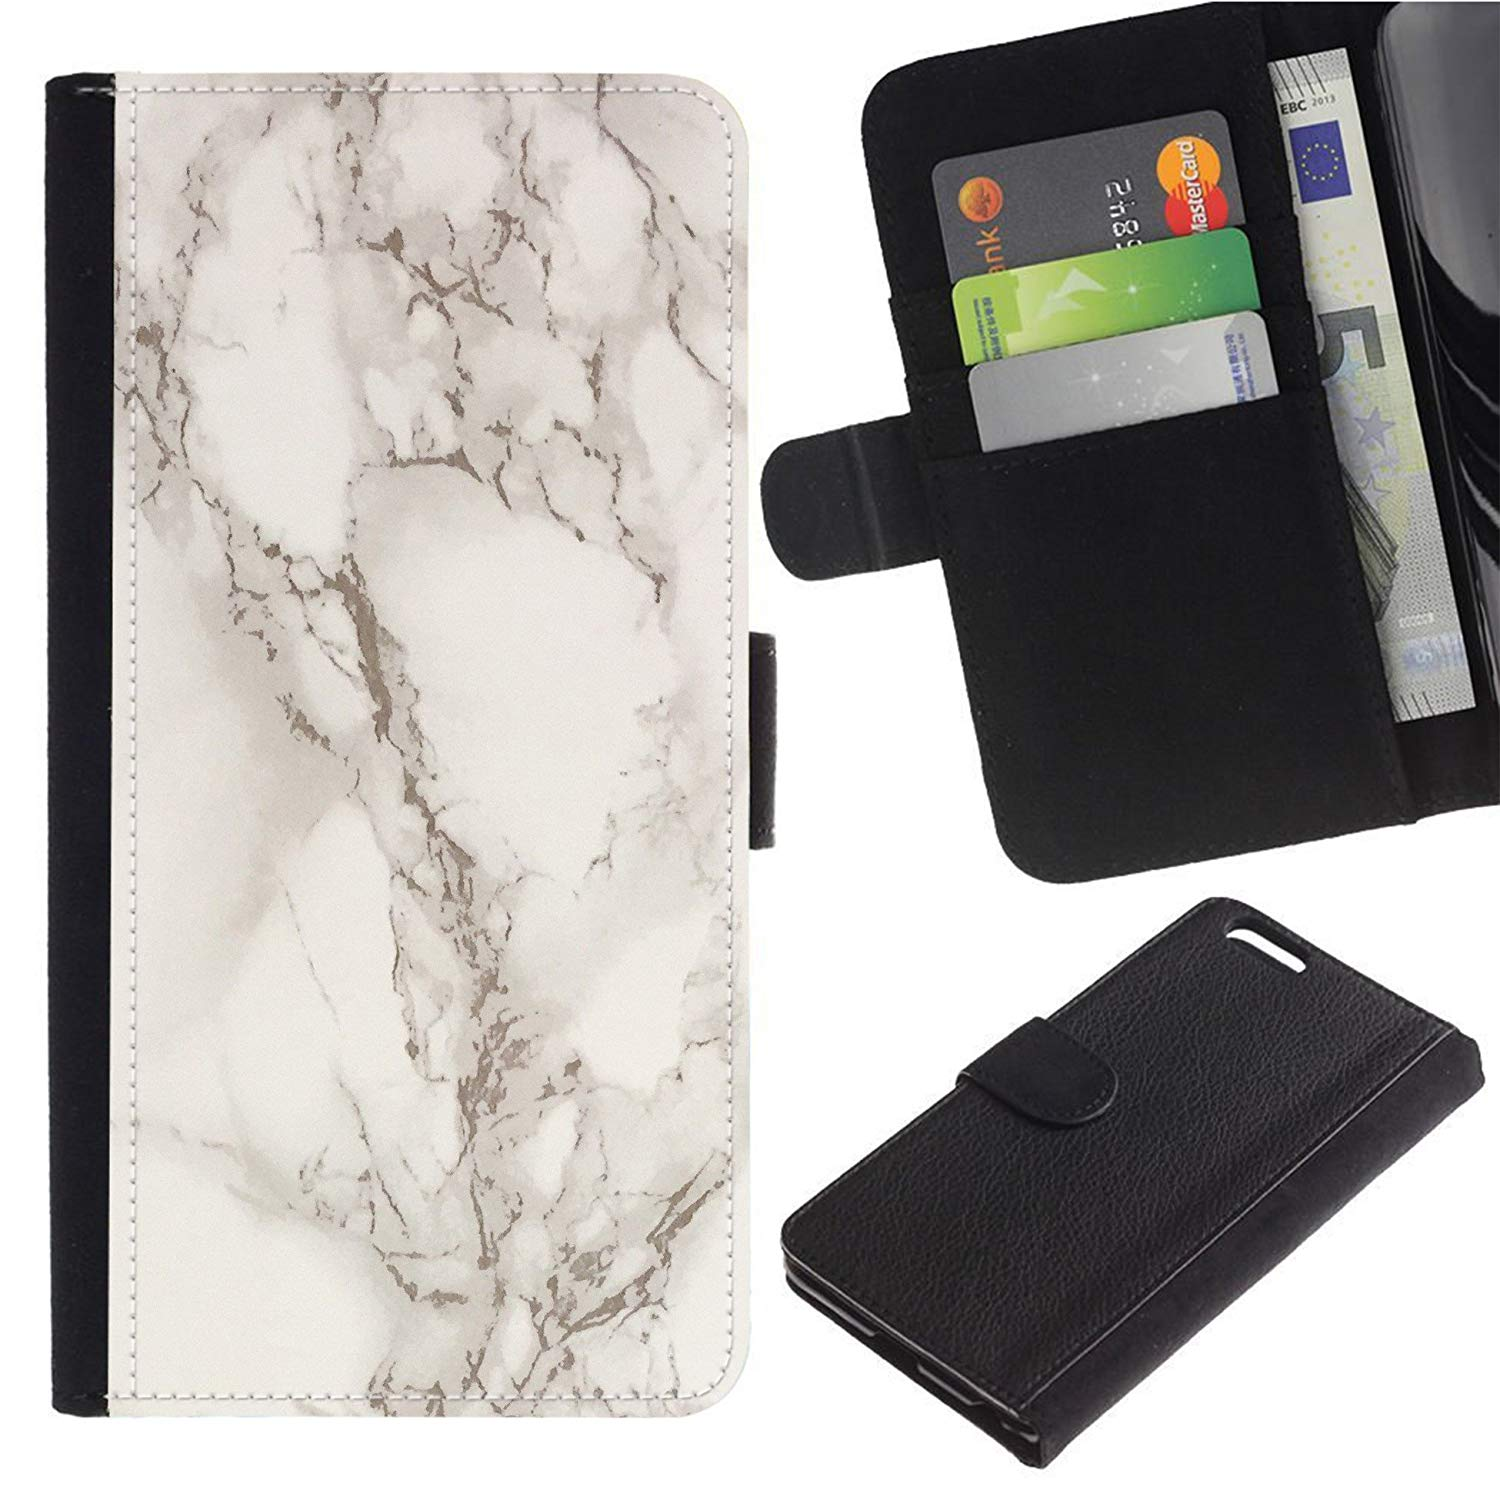 [Marble Pattern] For Moto E5 Play/Moto E5 Cruise, Flip Leather Wallet Holsters Pouch Skin Case